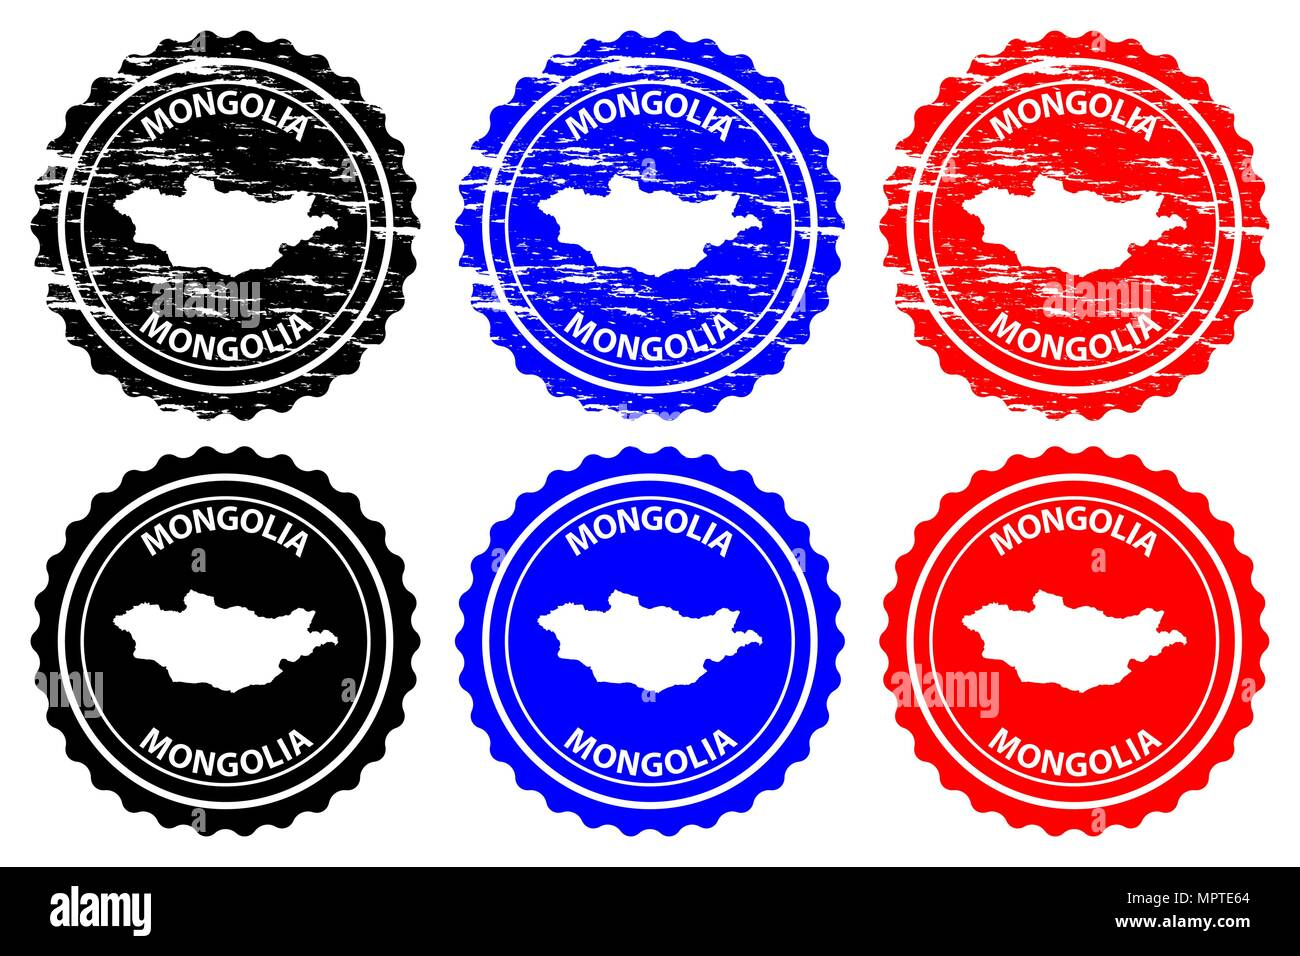 Mongolia - rubber stamp - vector, Mongolia map pattern - sticker - black, blue and red - Stock Vector